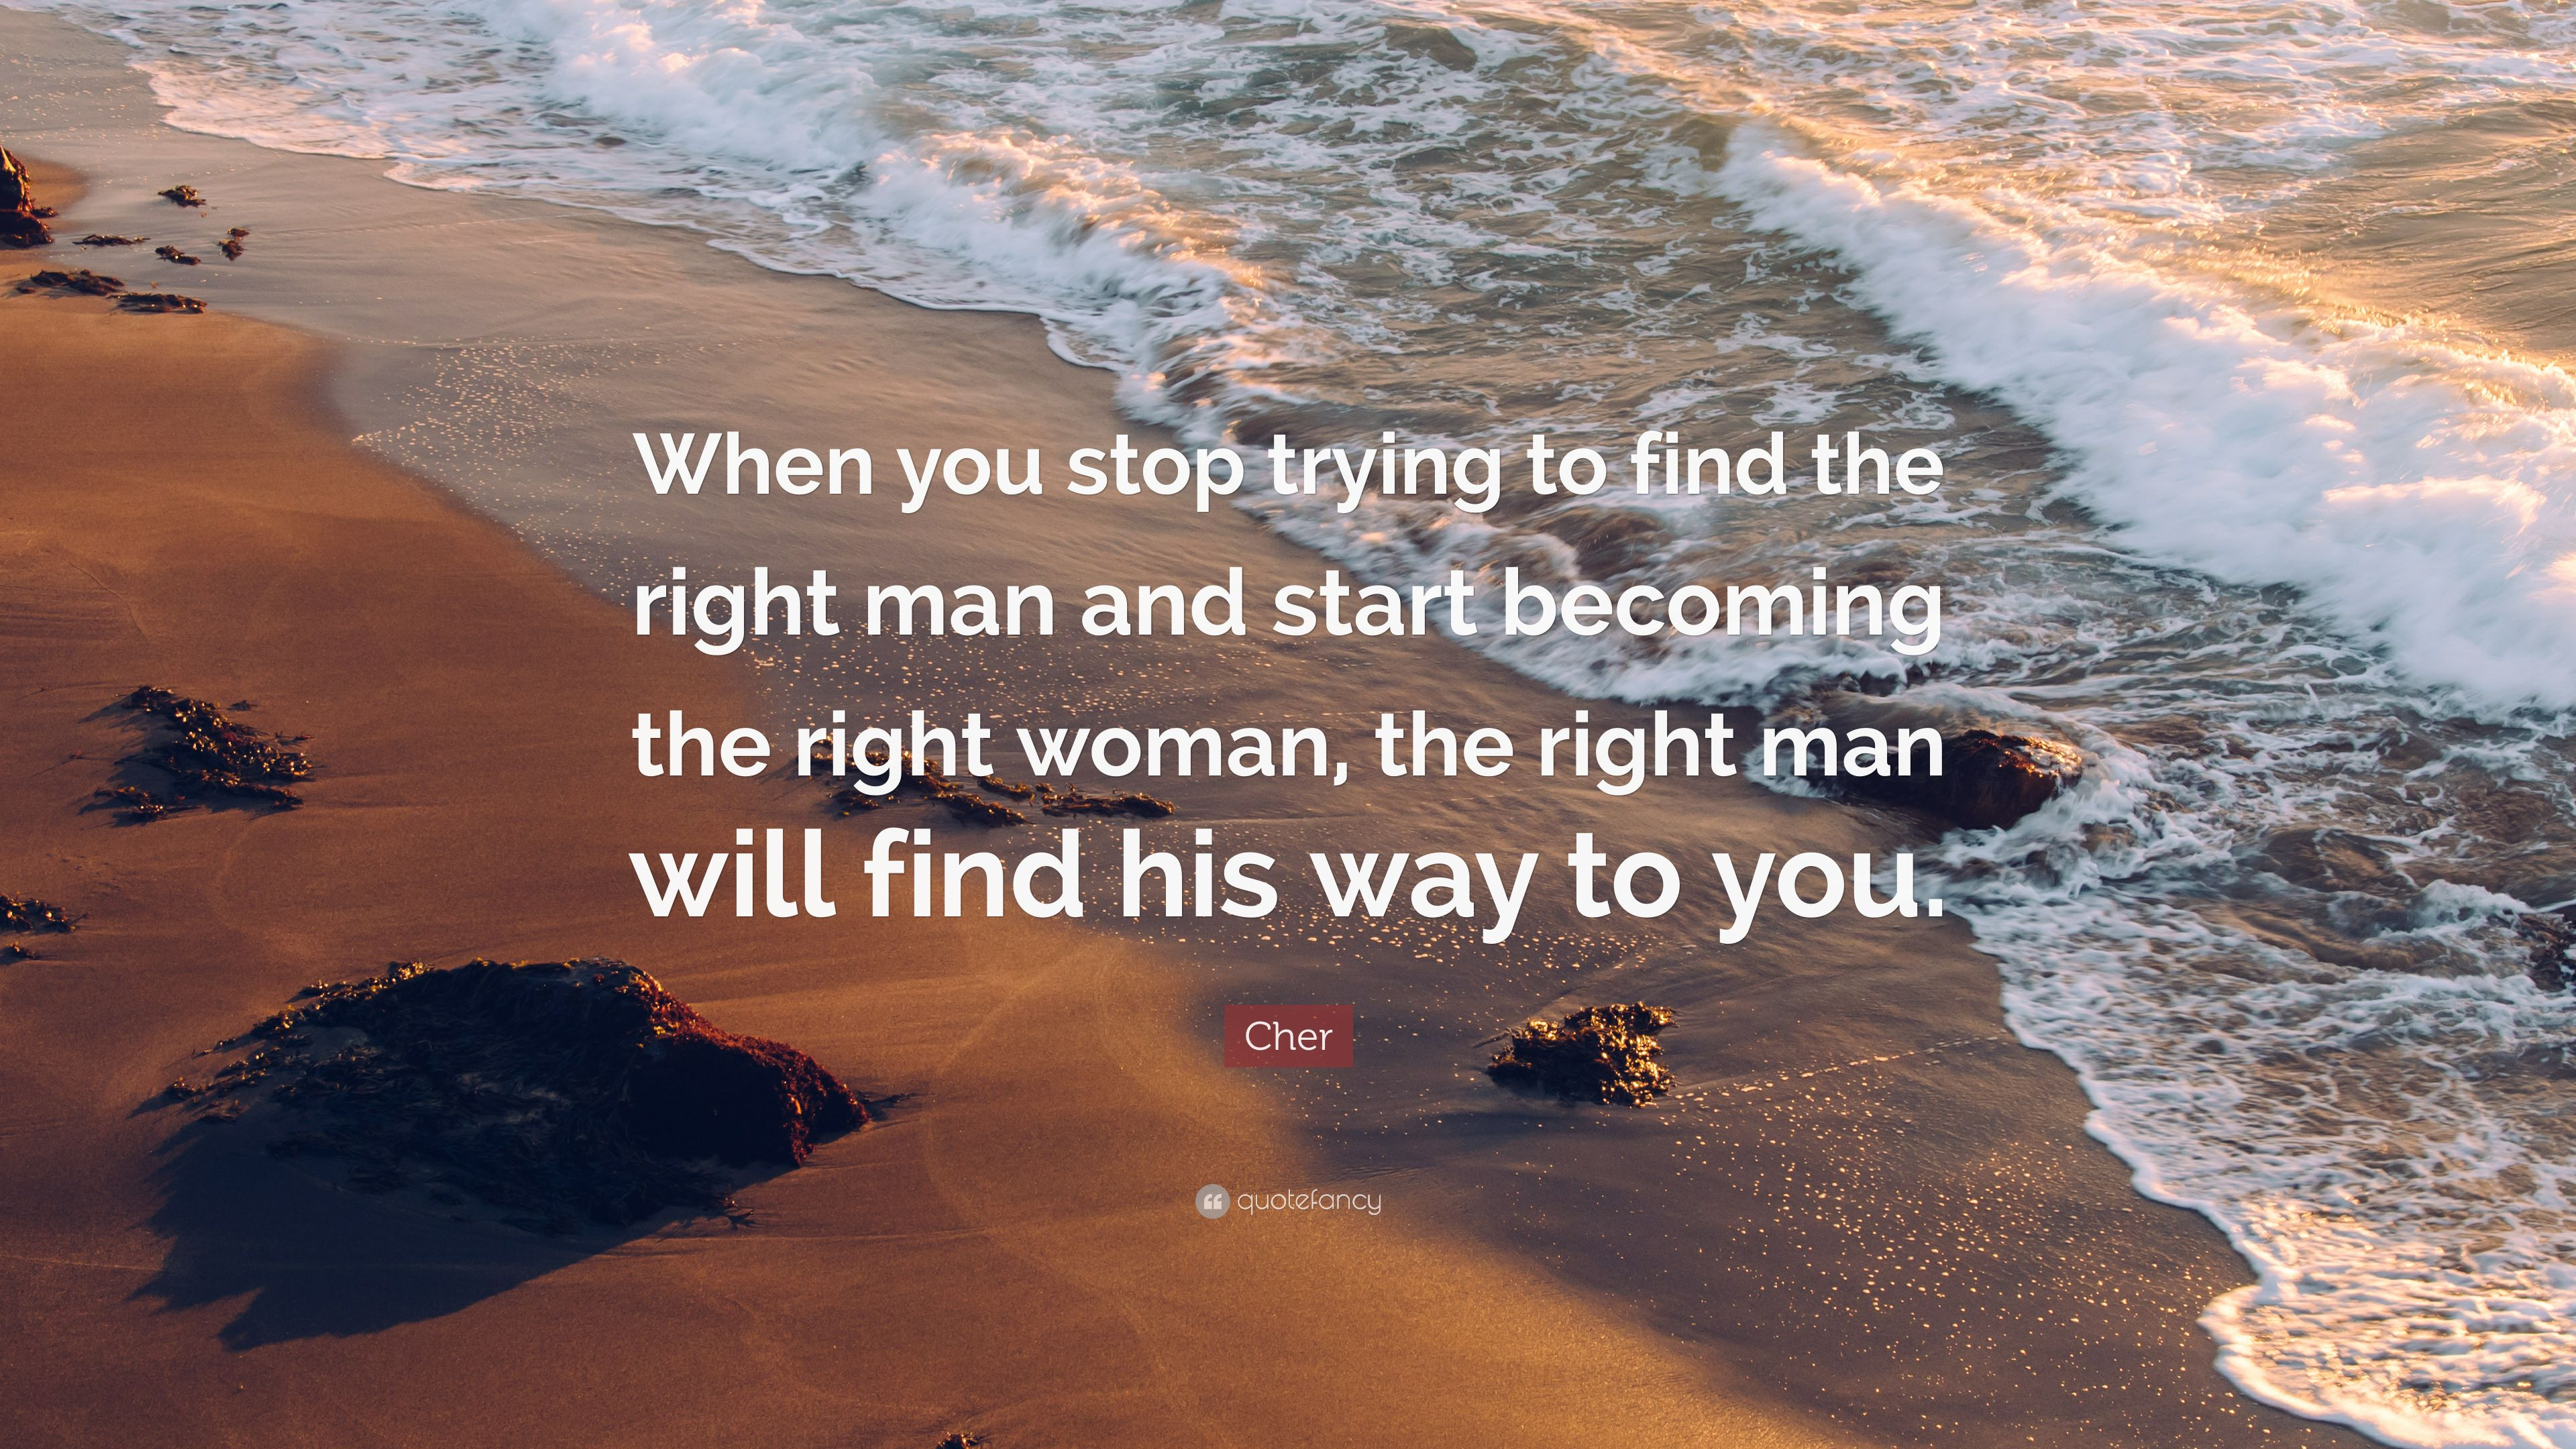 Cher Quote: When you stop trying to find the right man